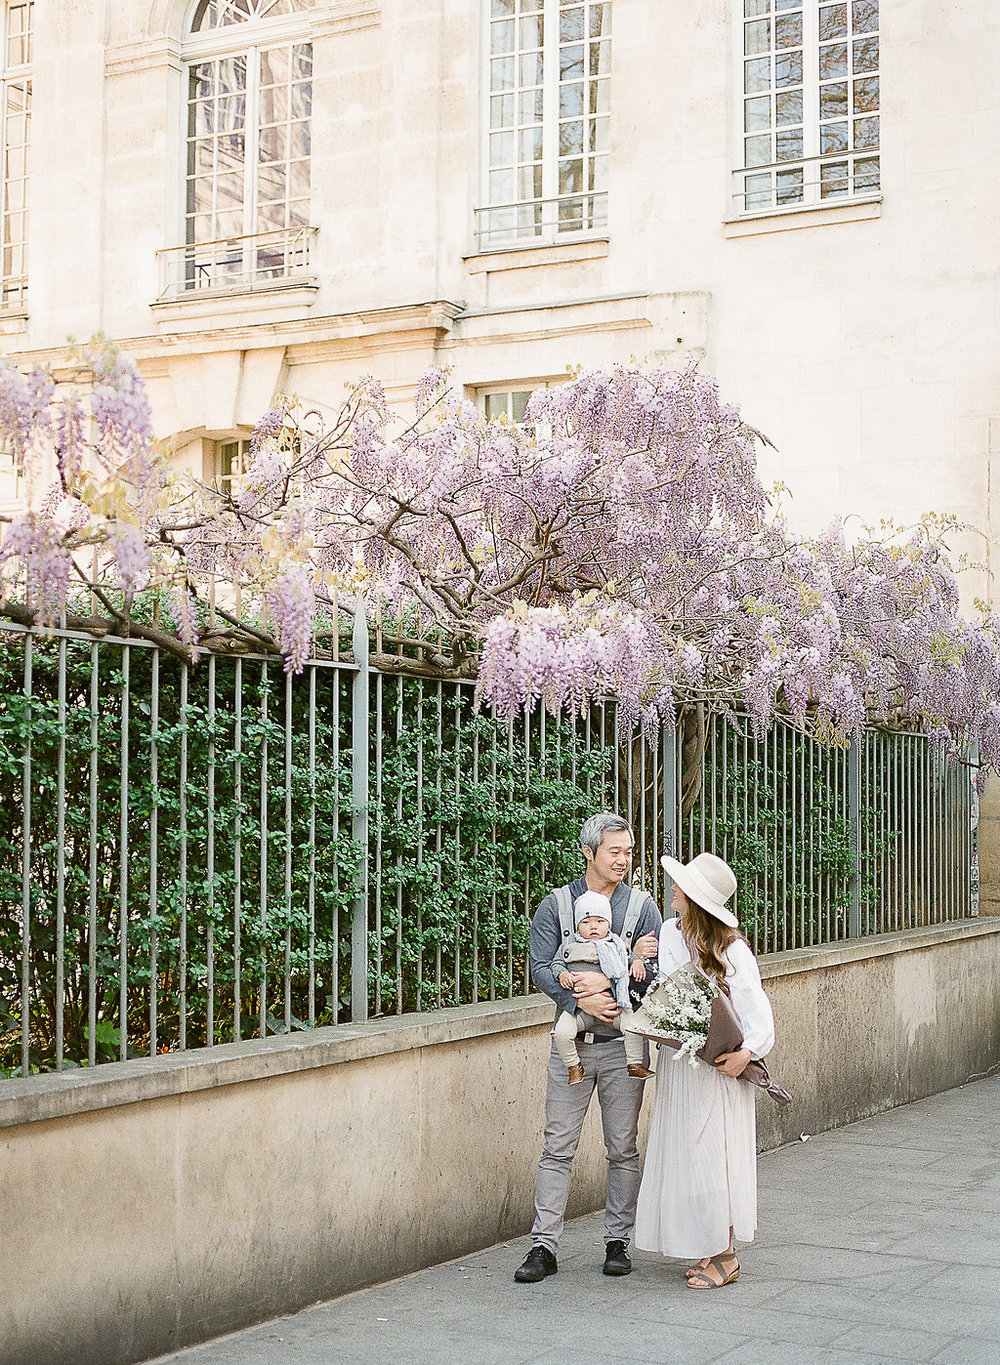 Family photography session in Paris | destination wedding photographer Tanja Kibogo6.JPG